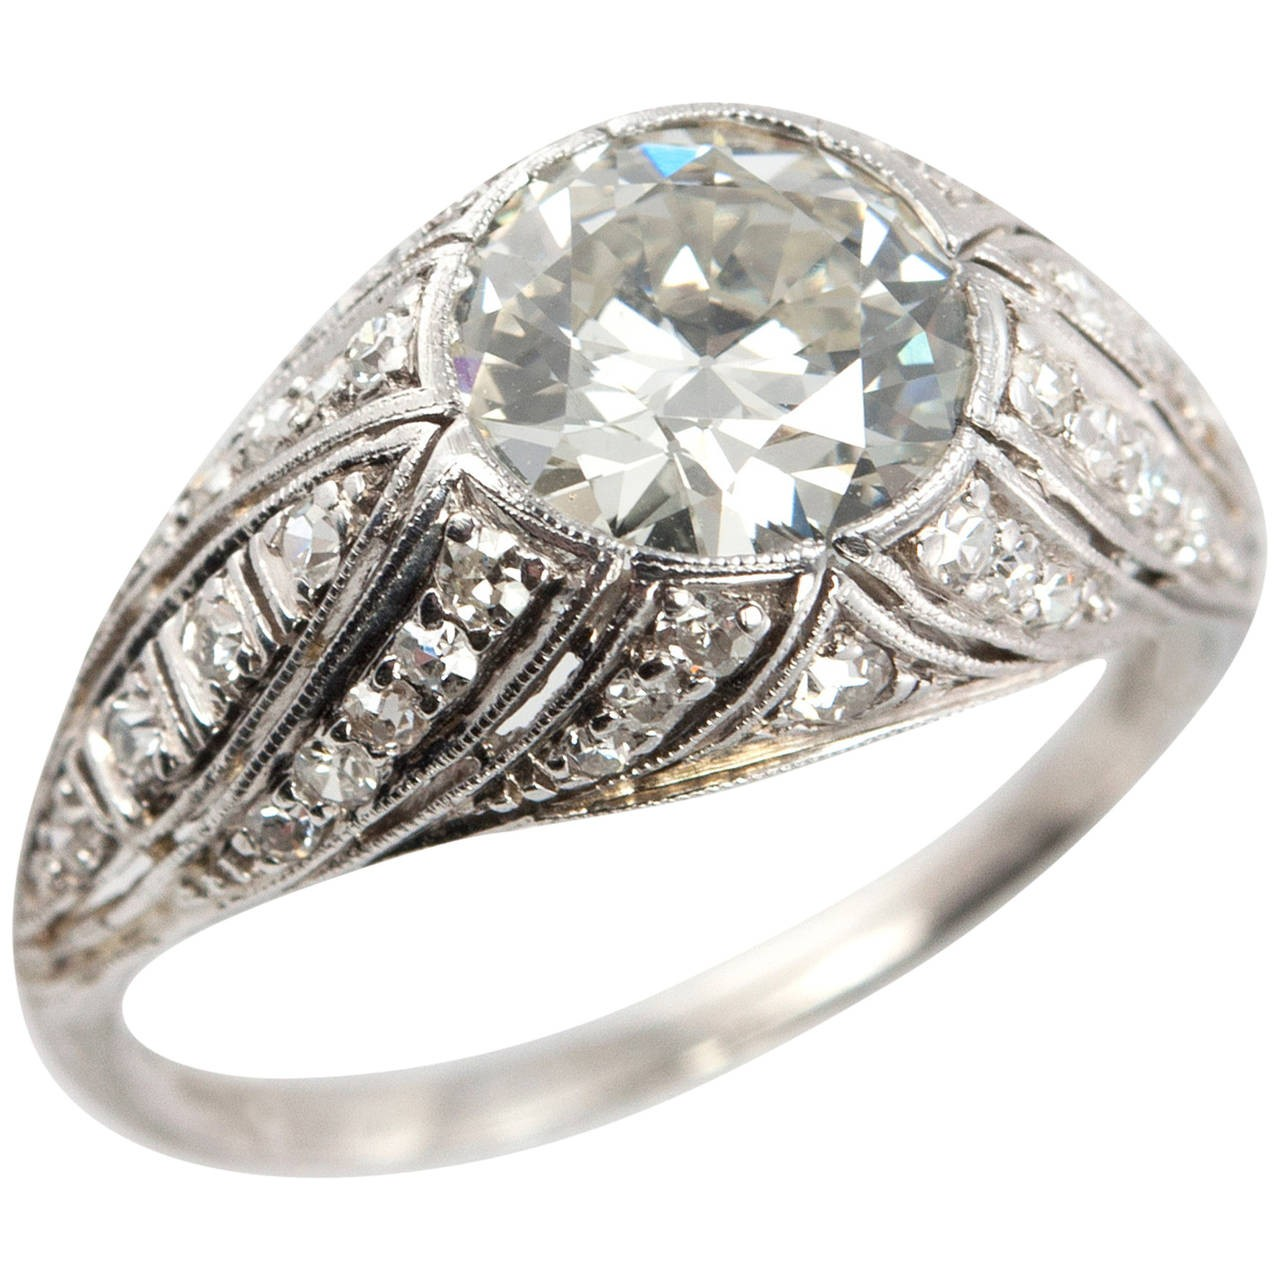 1.29 Carat Diamond and Platinum Art Deco Engagement Ring